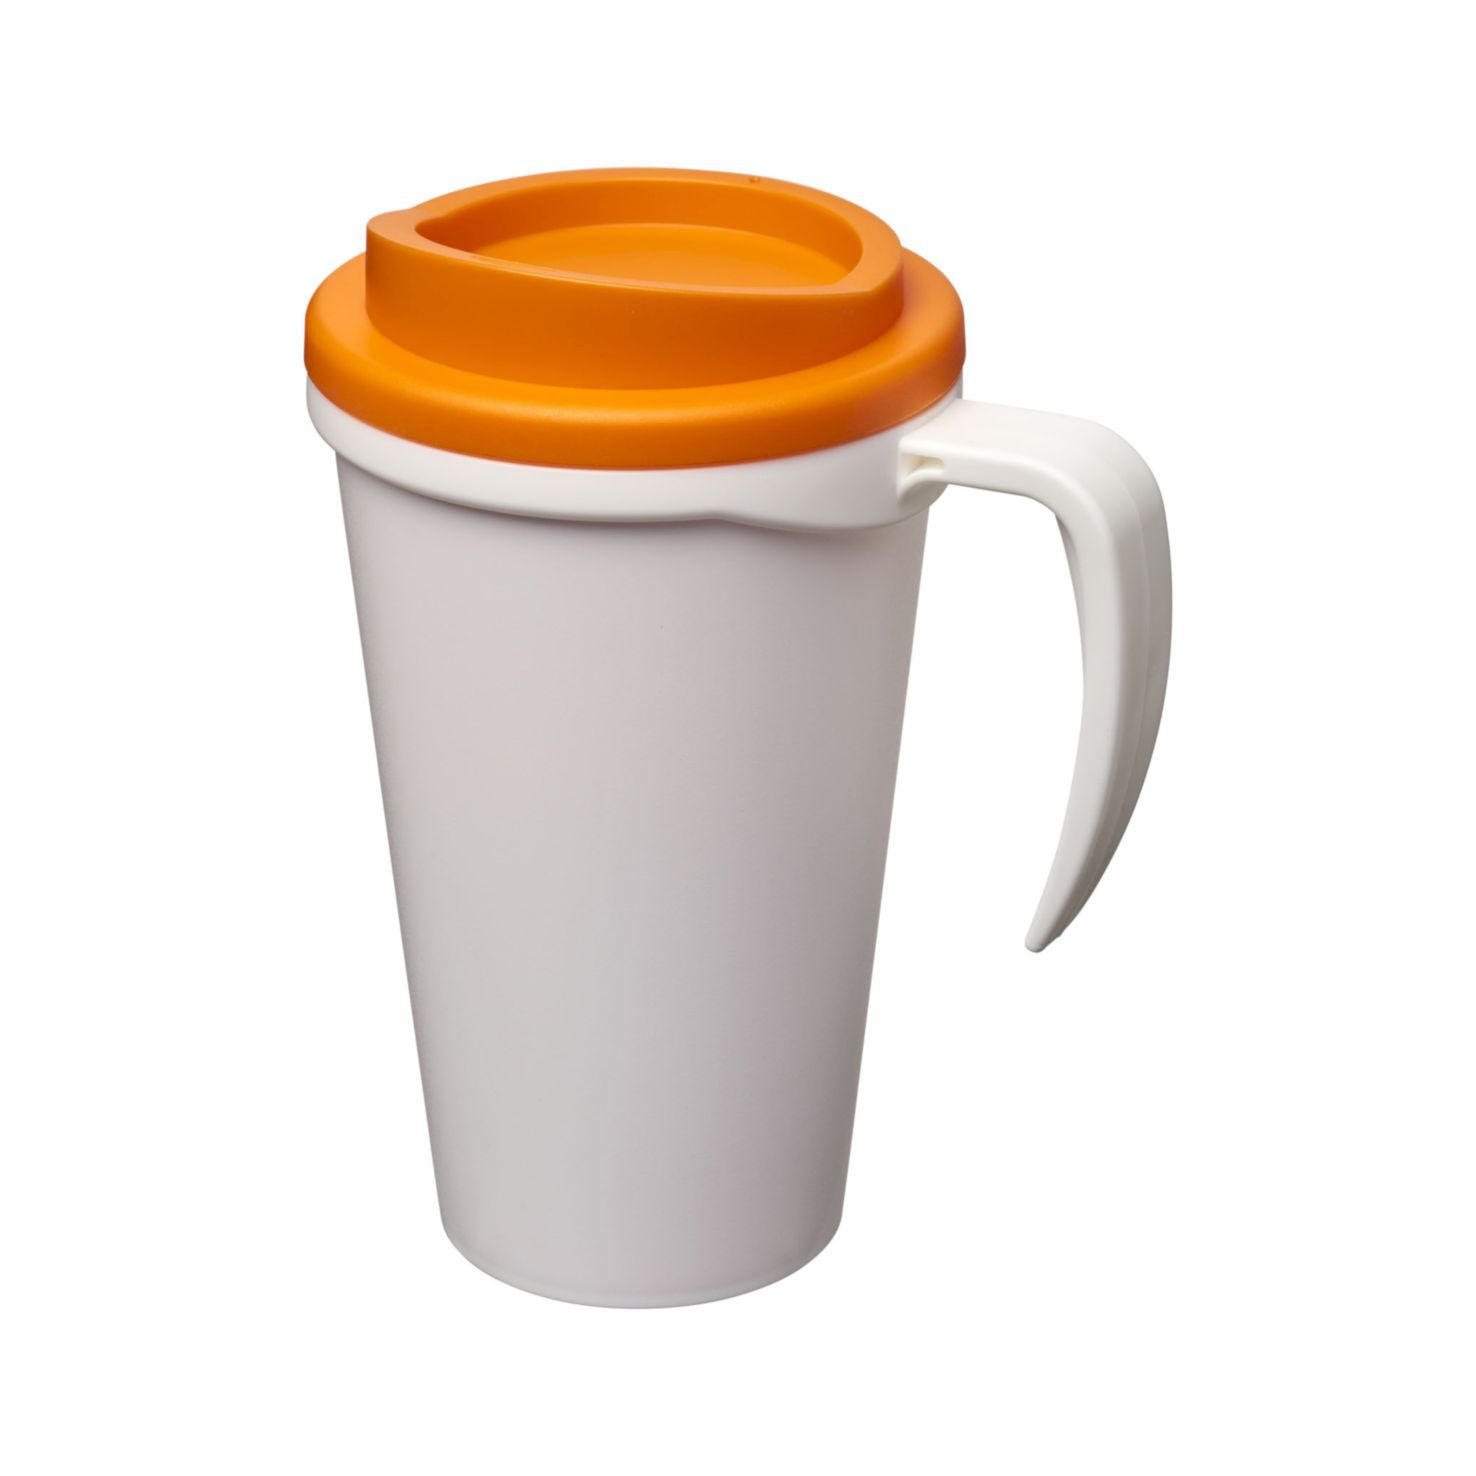 Wit / oranje Thermosbeker to go | Met handvat | 350 ml